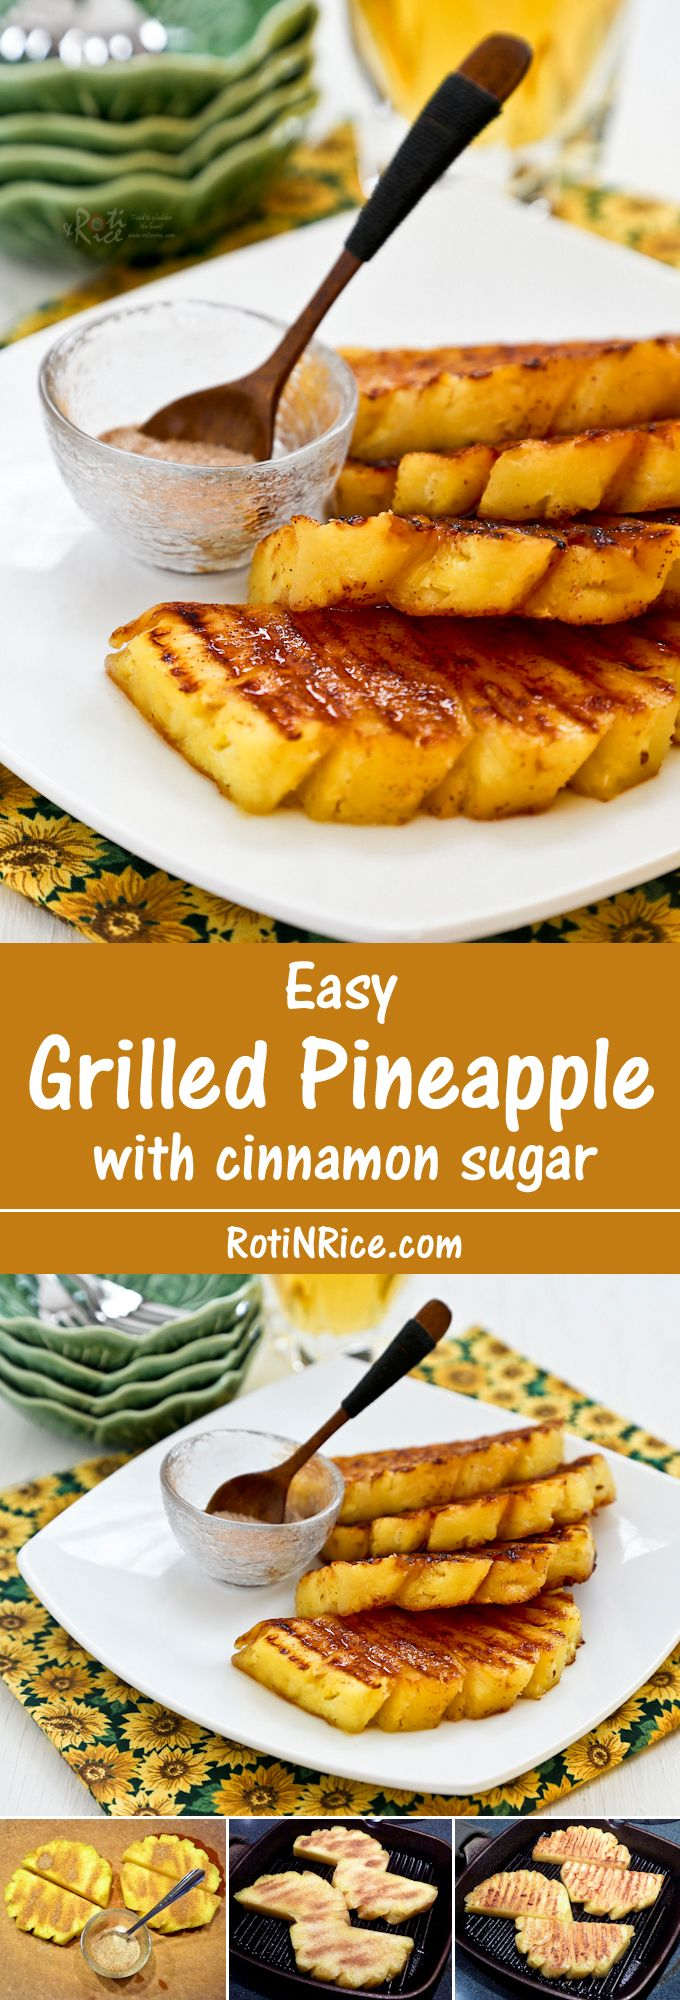 Simple and tasty Grilled Pineapple with cinnamon sugar, a delicious accompaniment to grilled and roasted meats. It is also great as a snack or dessert. | Food to gladden the heart at RotiNRice.com